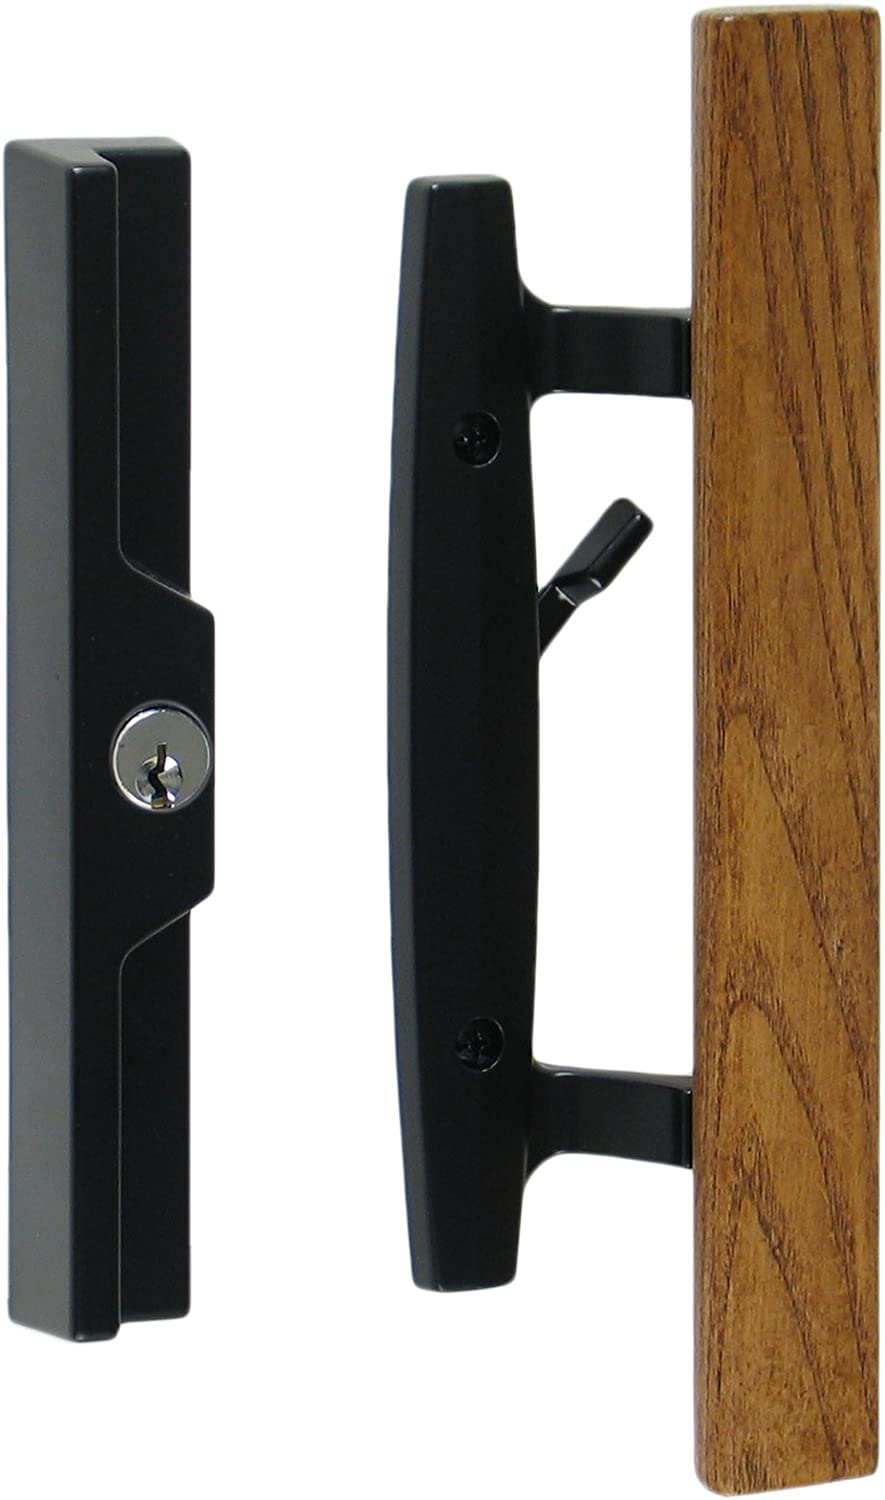 """Standard 3-15//16/"""" CTC Screw Holes Includes Key Cylinder 1-1//2 Door Thickness Lanai Sliding Glass Door Handle Set with Oak Wood Pull in White Finish"""